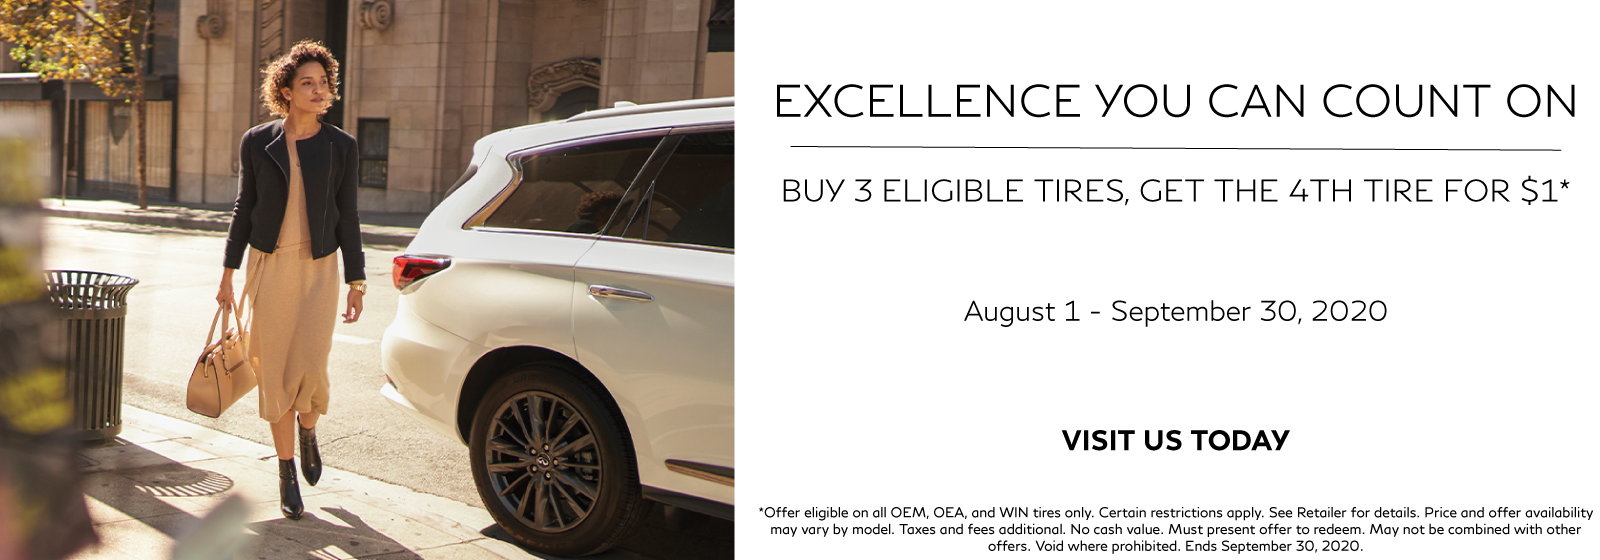 Excellence you can count on. Buy 3 eligible tires, get the 4th tire for $1. Expires 9/30/2020. Visit us today.